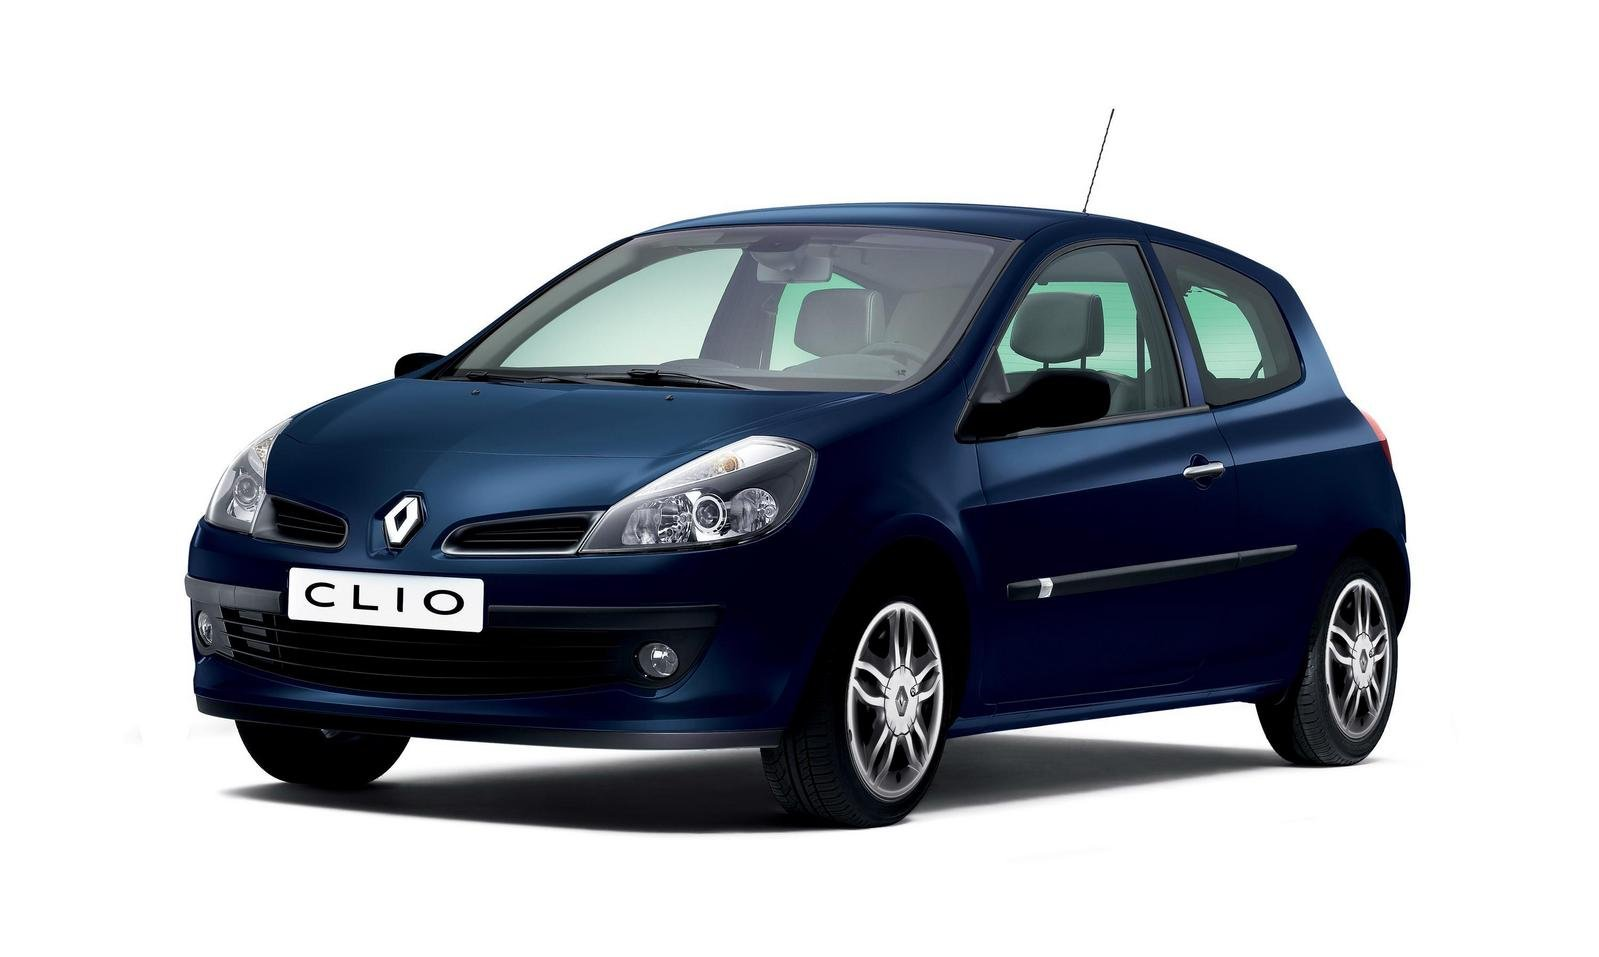 2007 renault clio extreme picture 169281 car review top speed. Black Bedroom Furniture Sets. Home Design Ideas